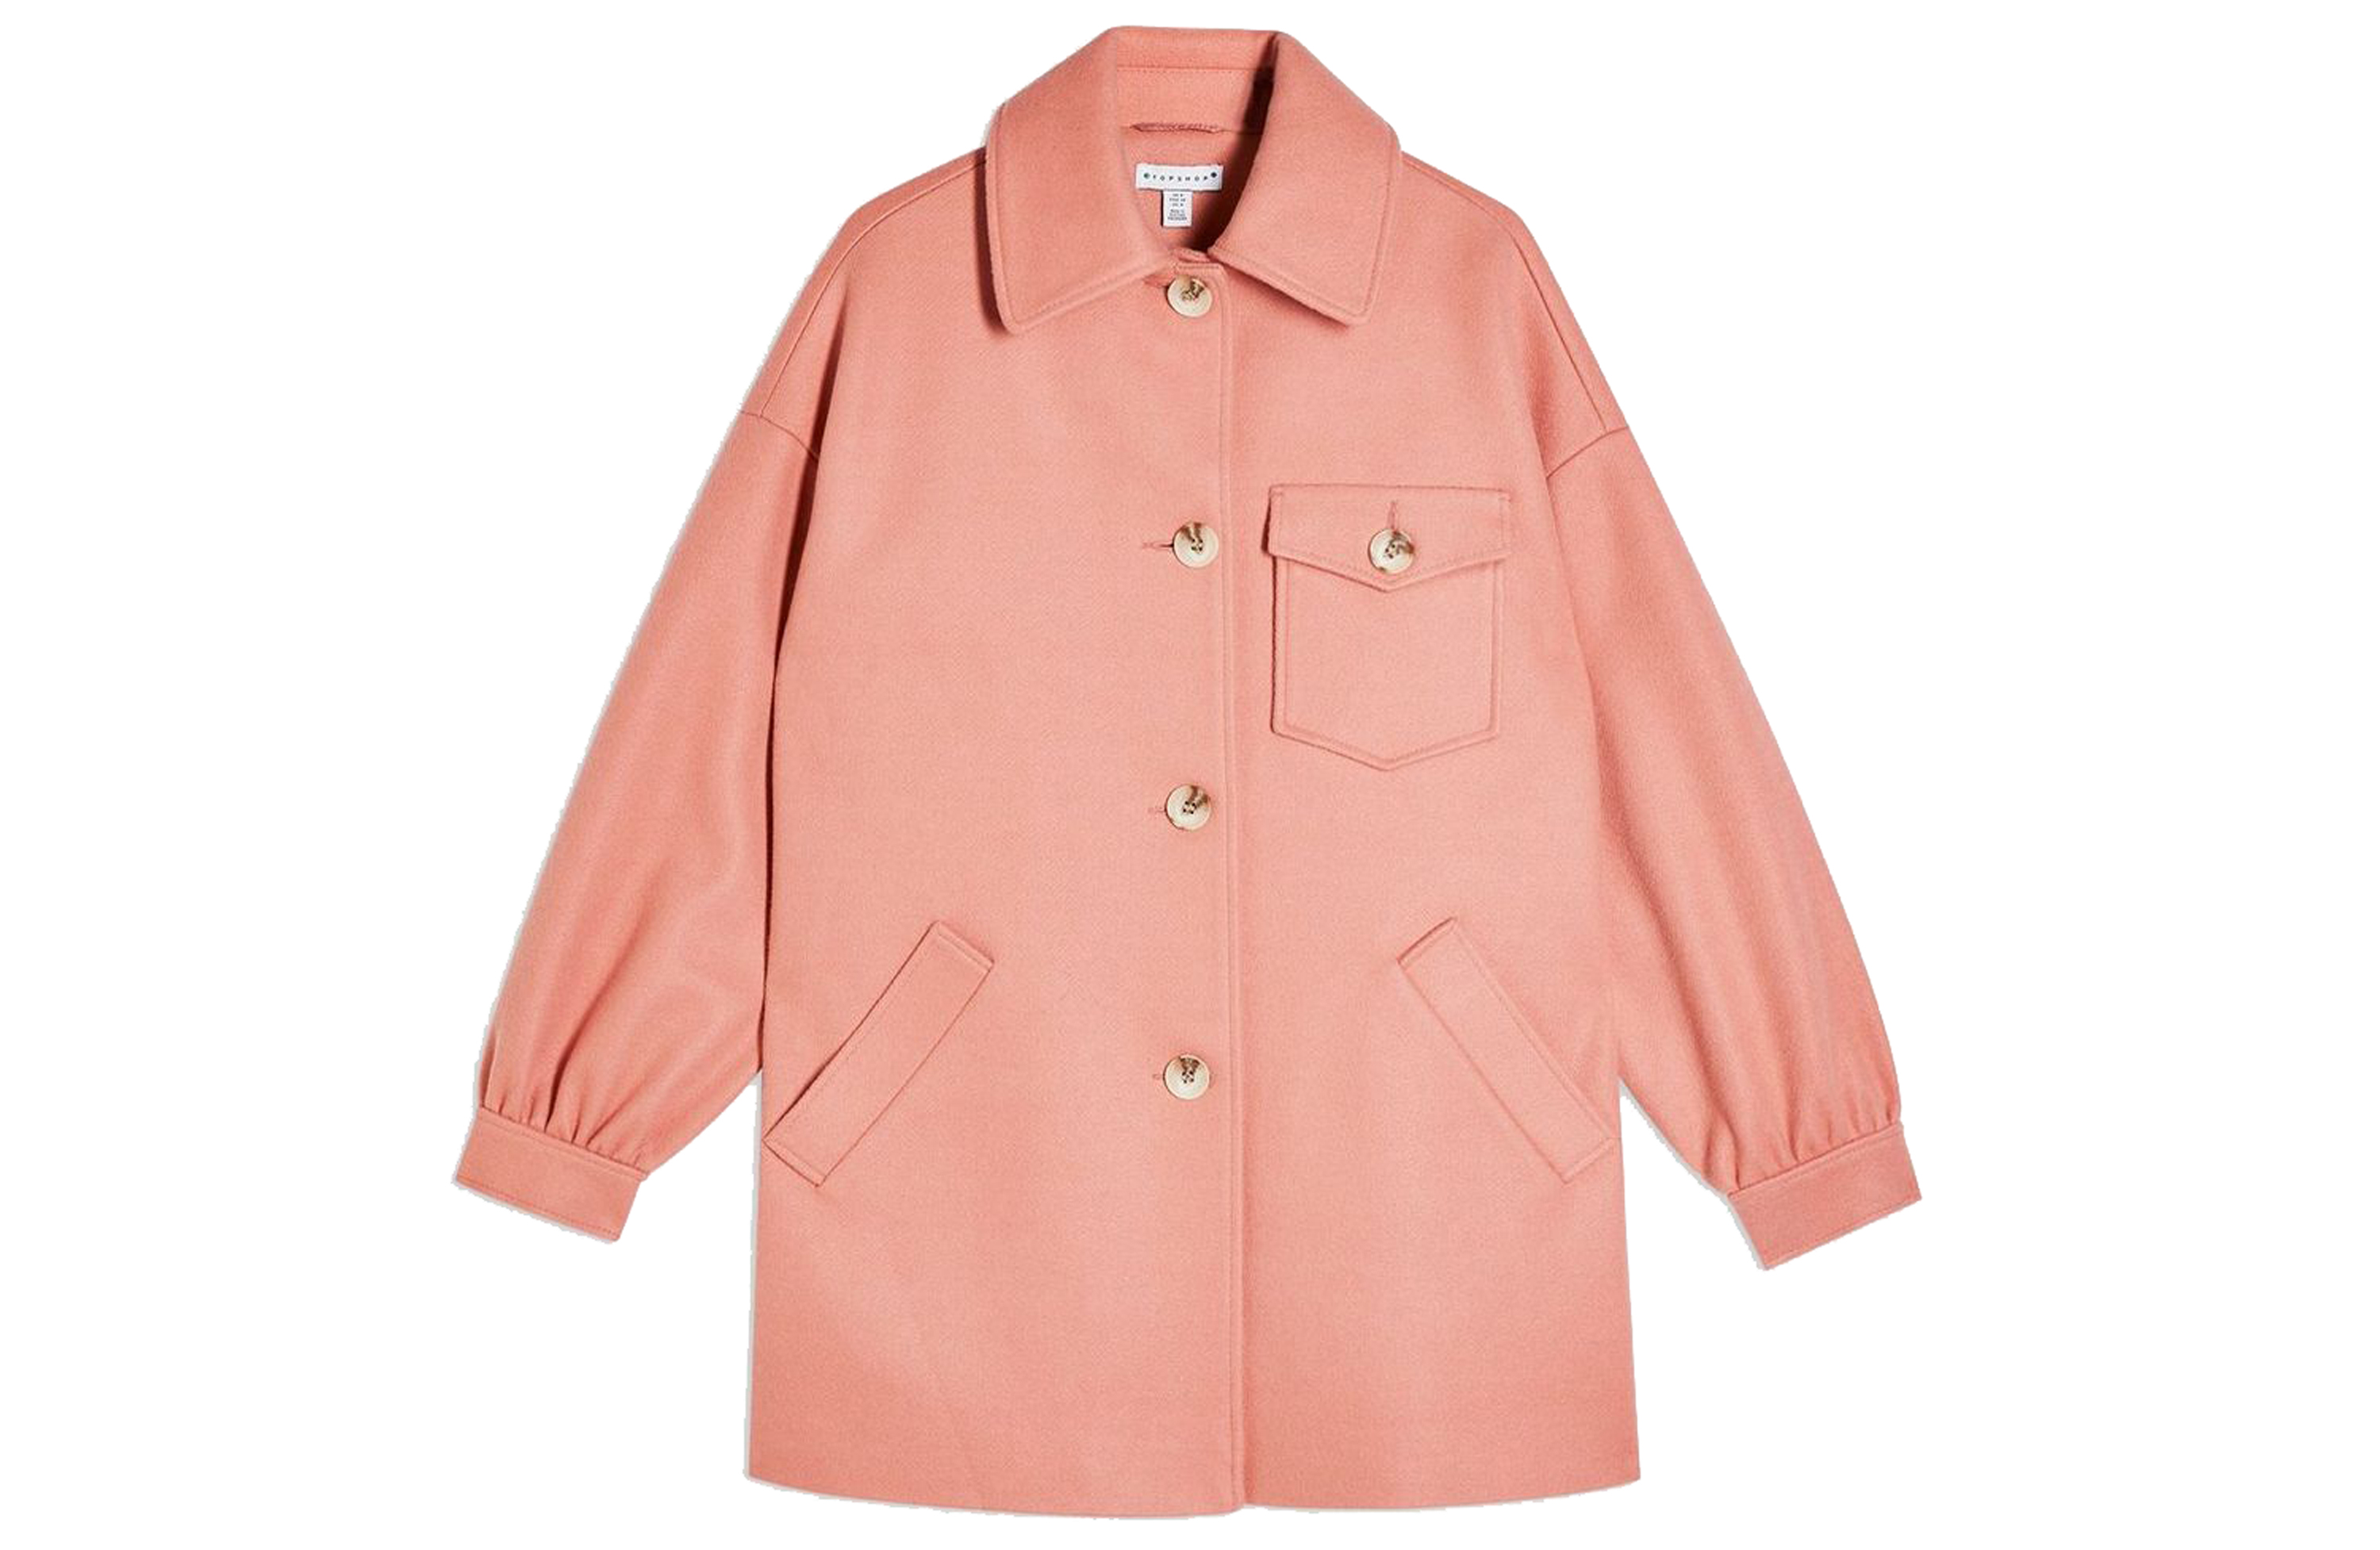 Topshop Apricot Shacket With Wool, £59/AED267.70